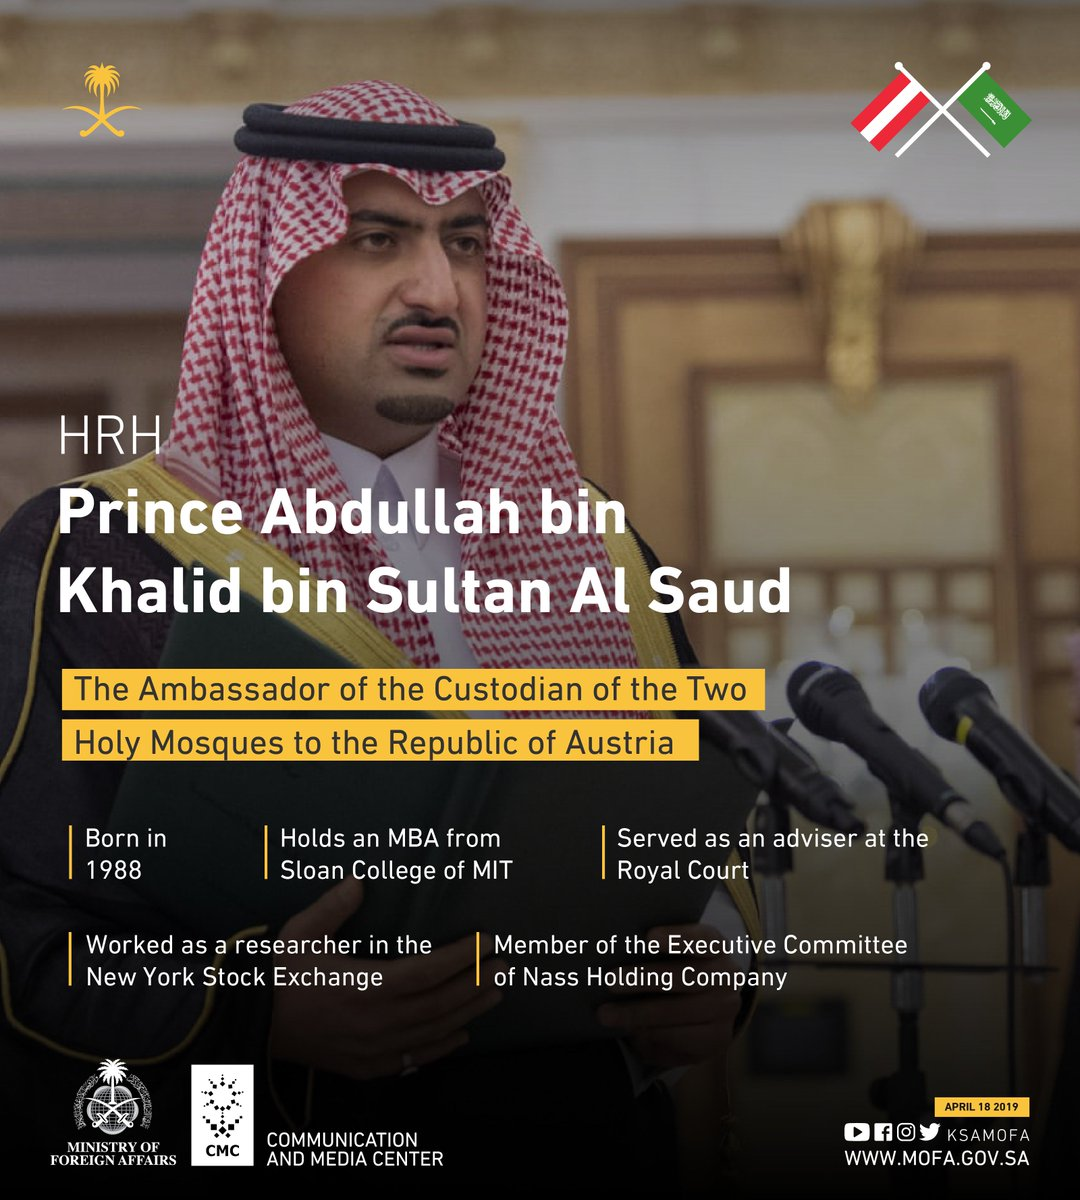 Foreign Ministry 🇸🇦 on Twitter: